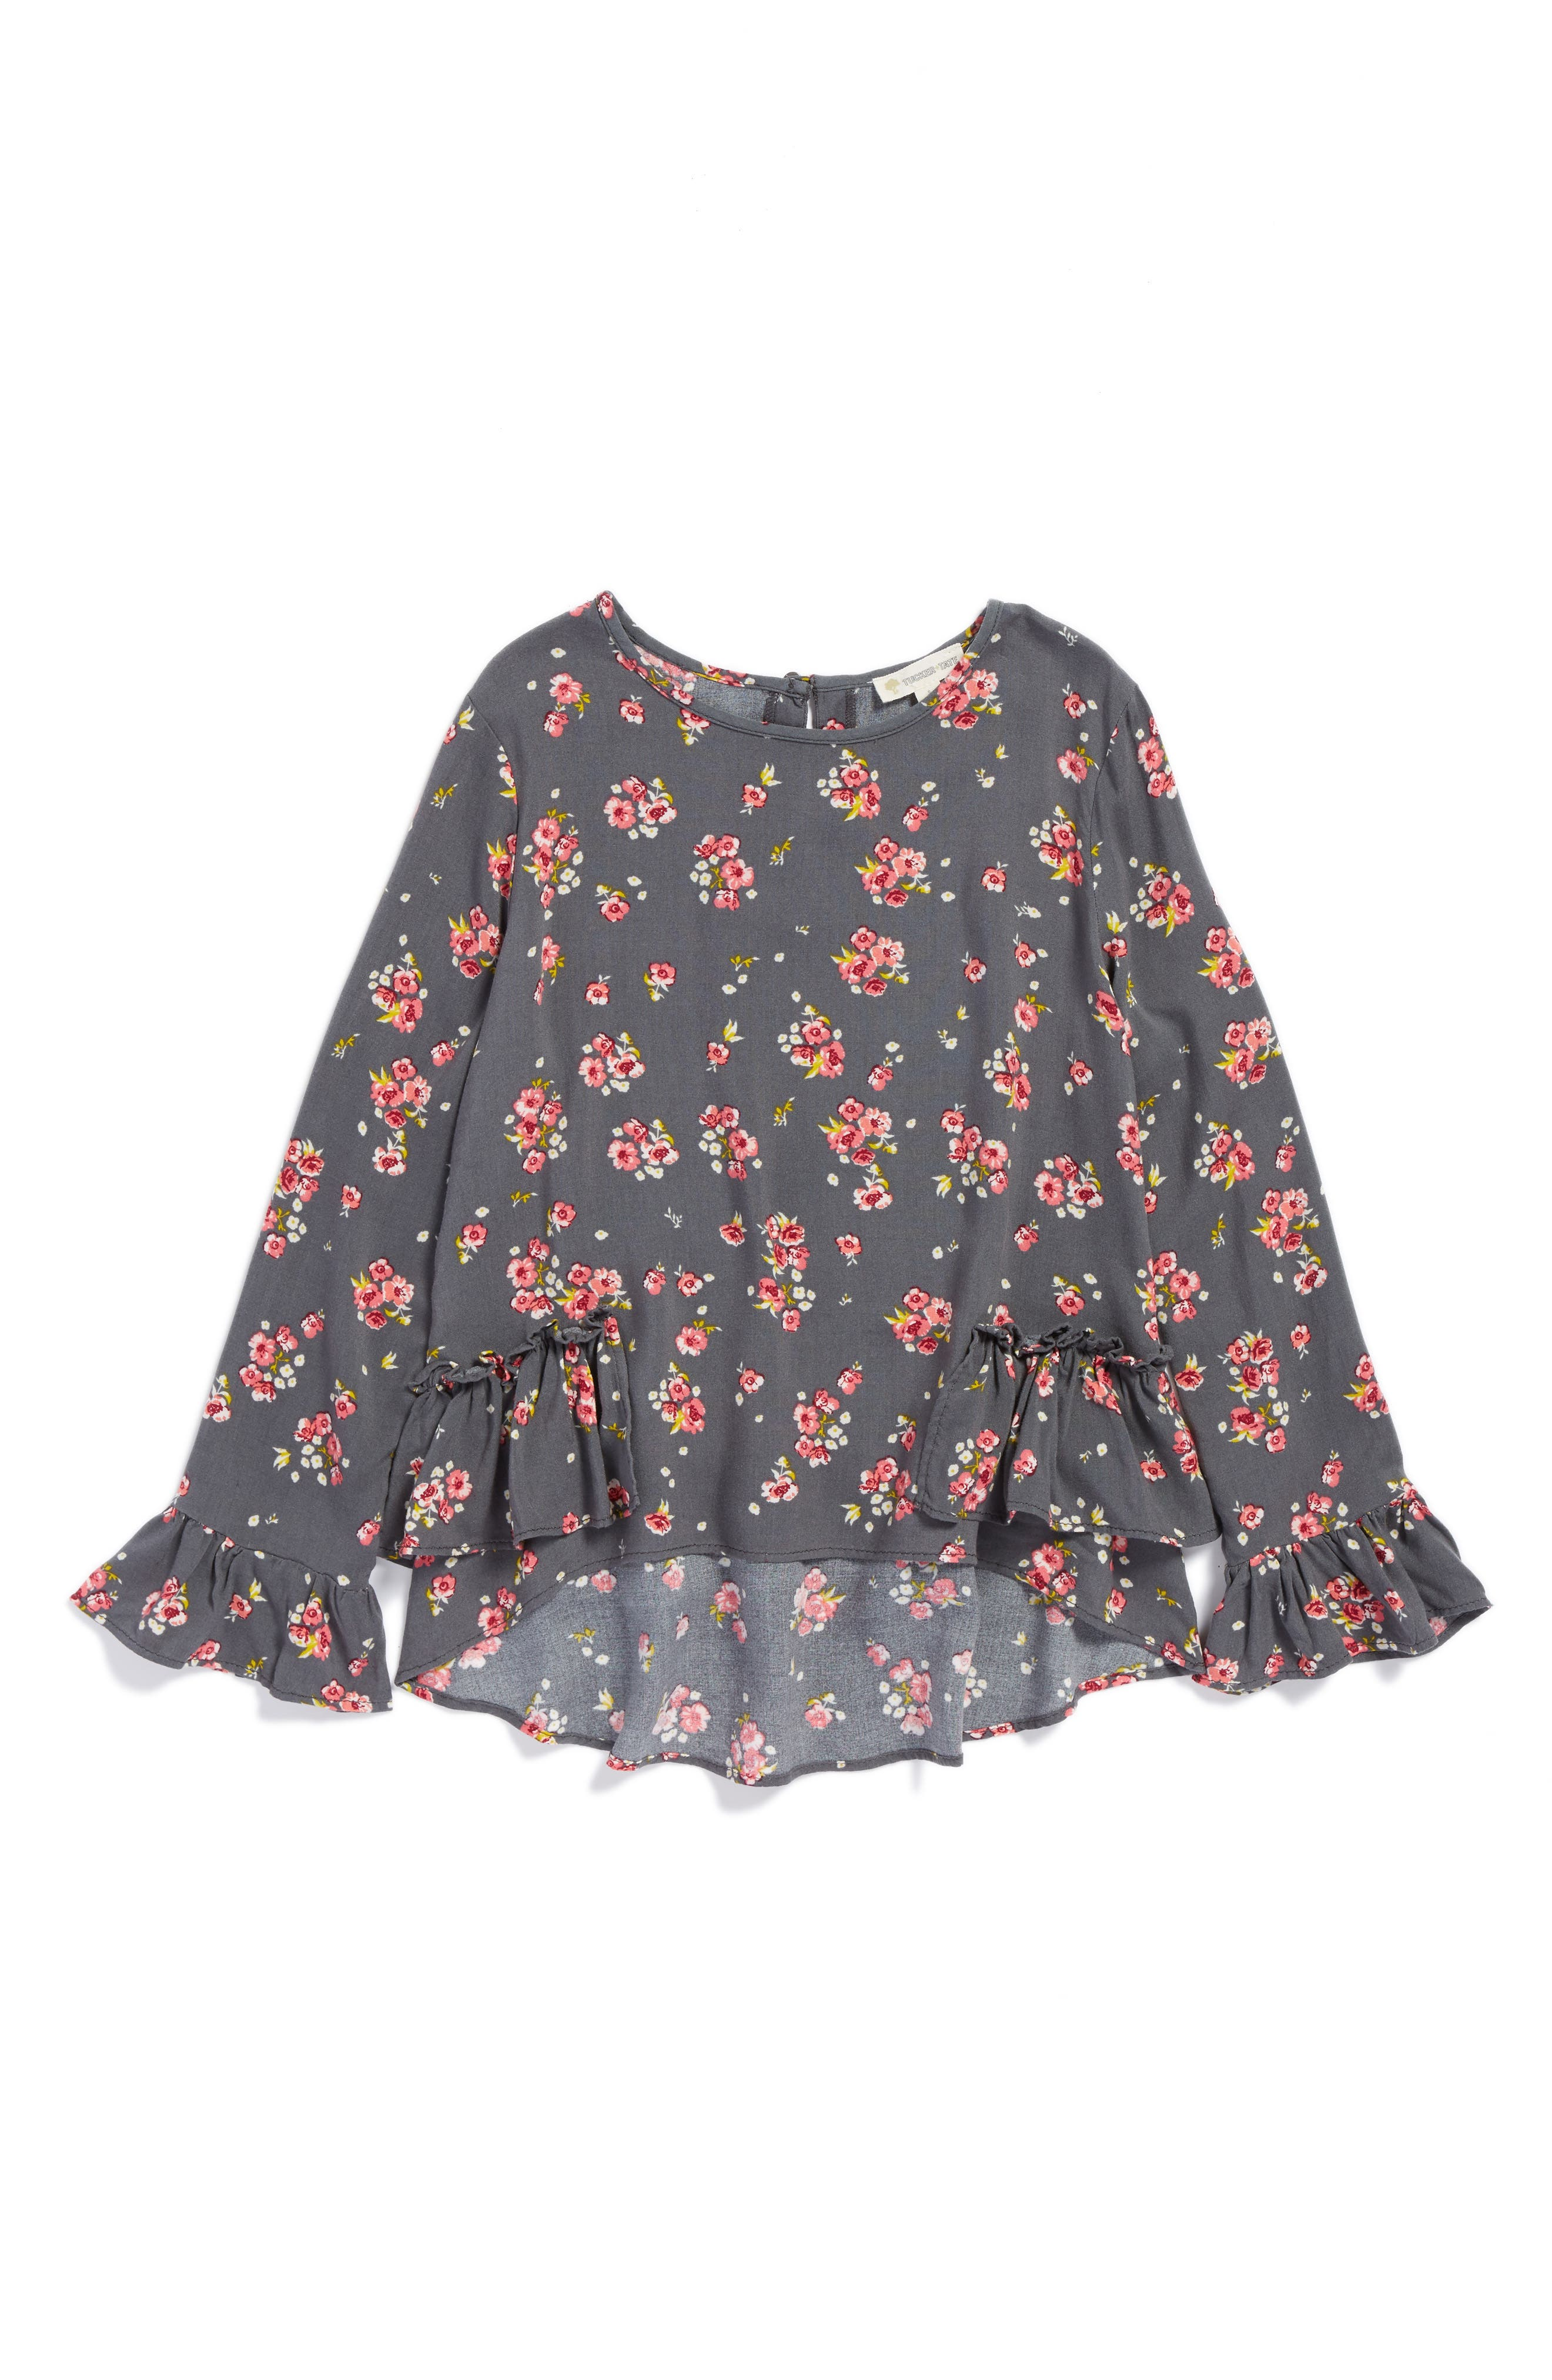 Alternate Image 1 Selected - Tucker + Tate Print Ruffle Top (Big Girls)